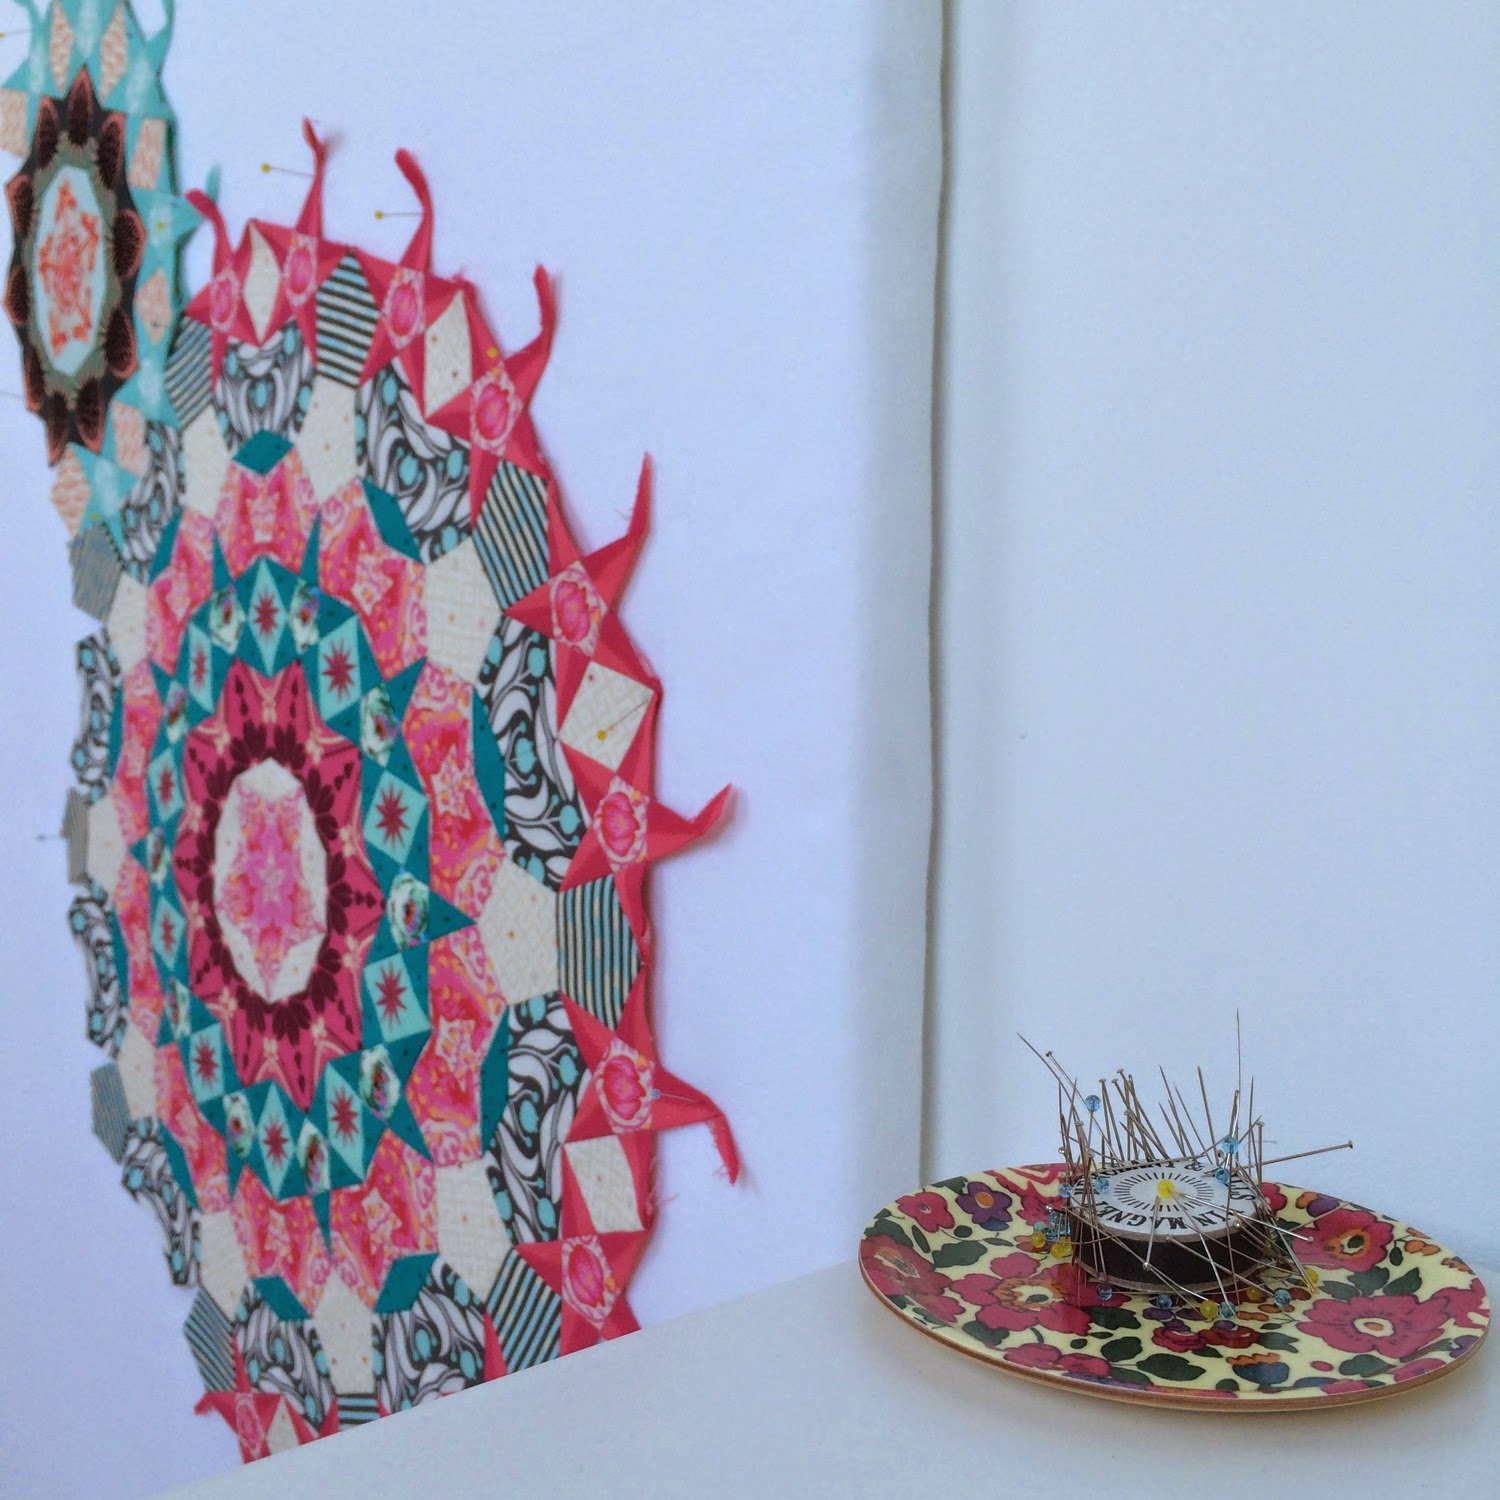 Design Wall Quilts Retractable : Flossie teacakes a quilt design wall